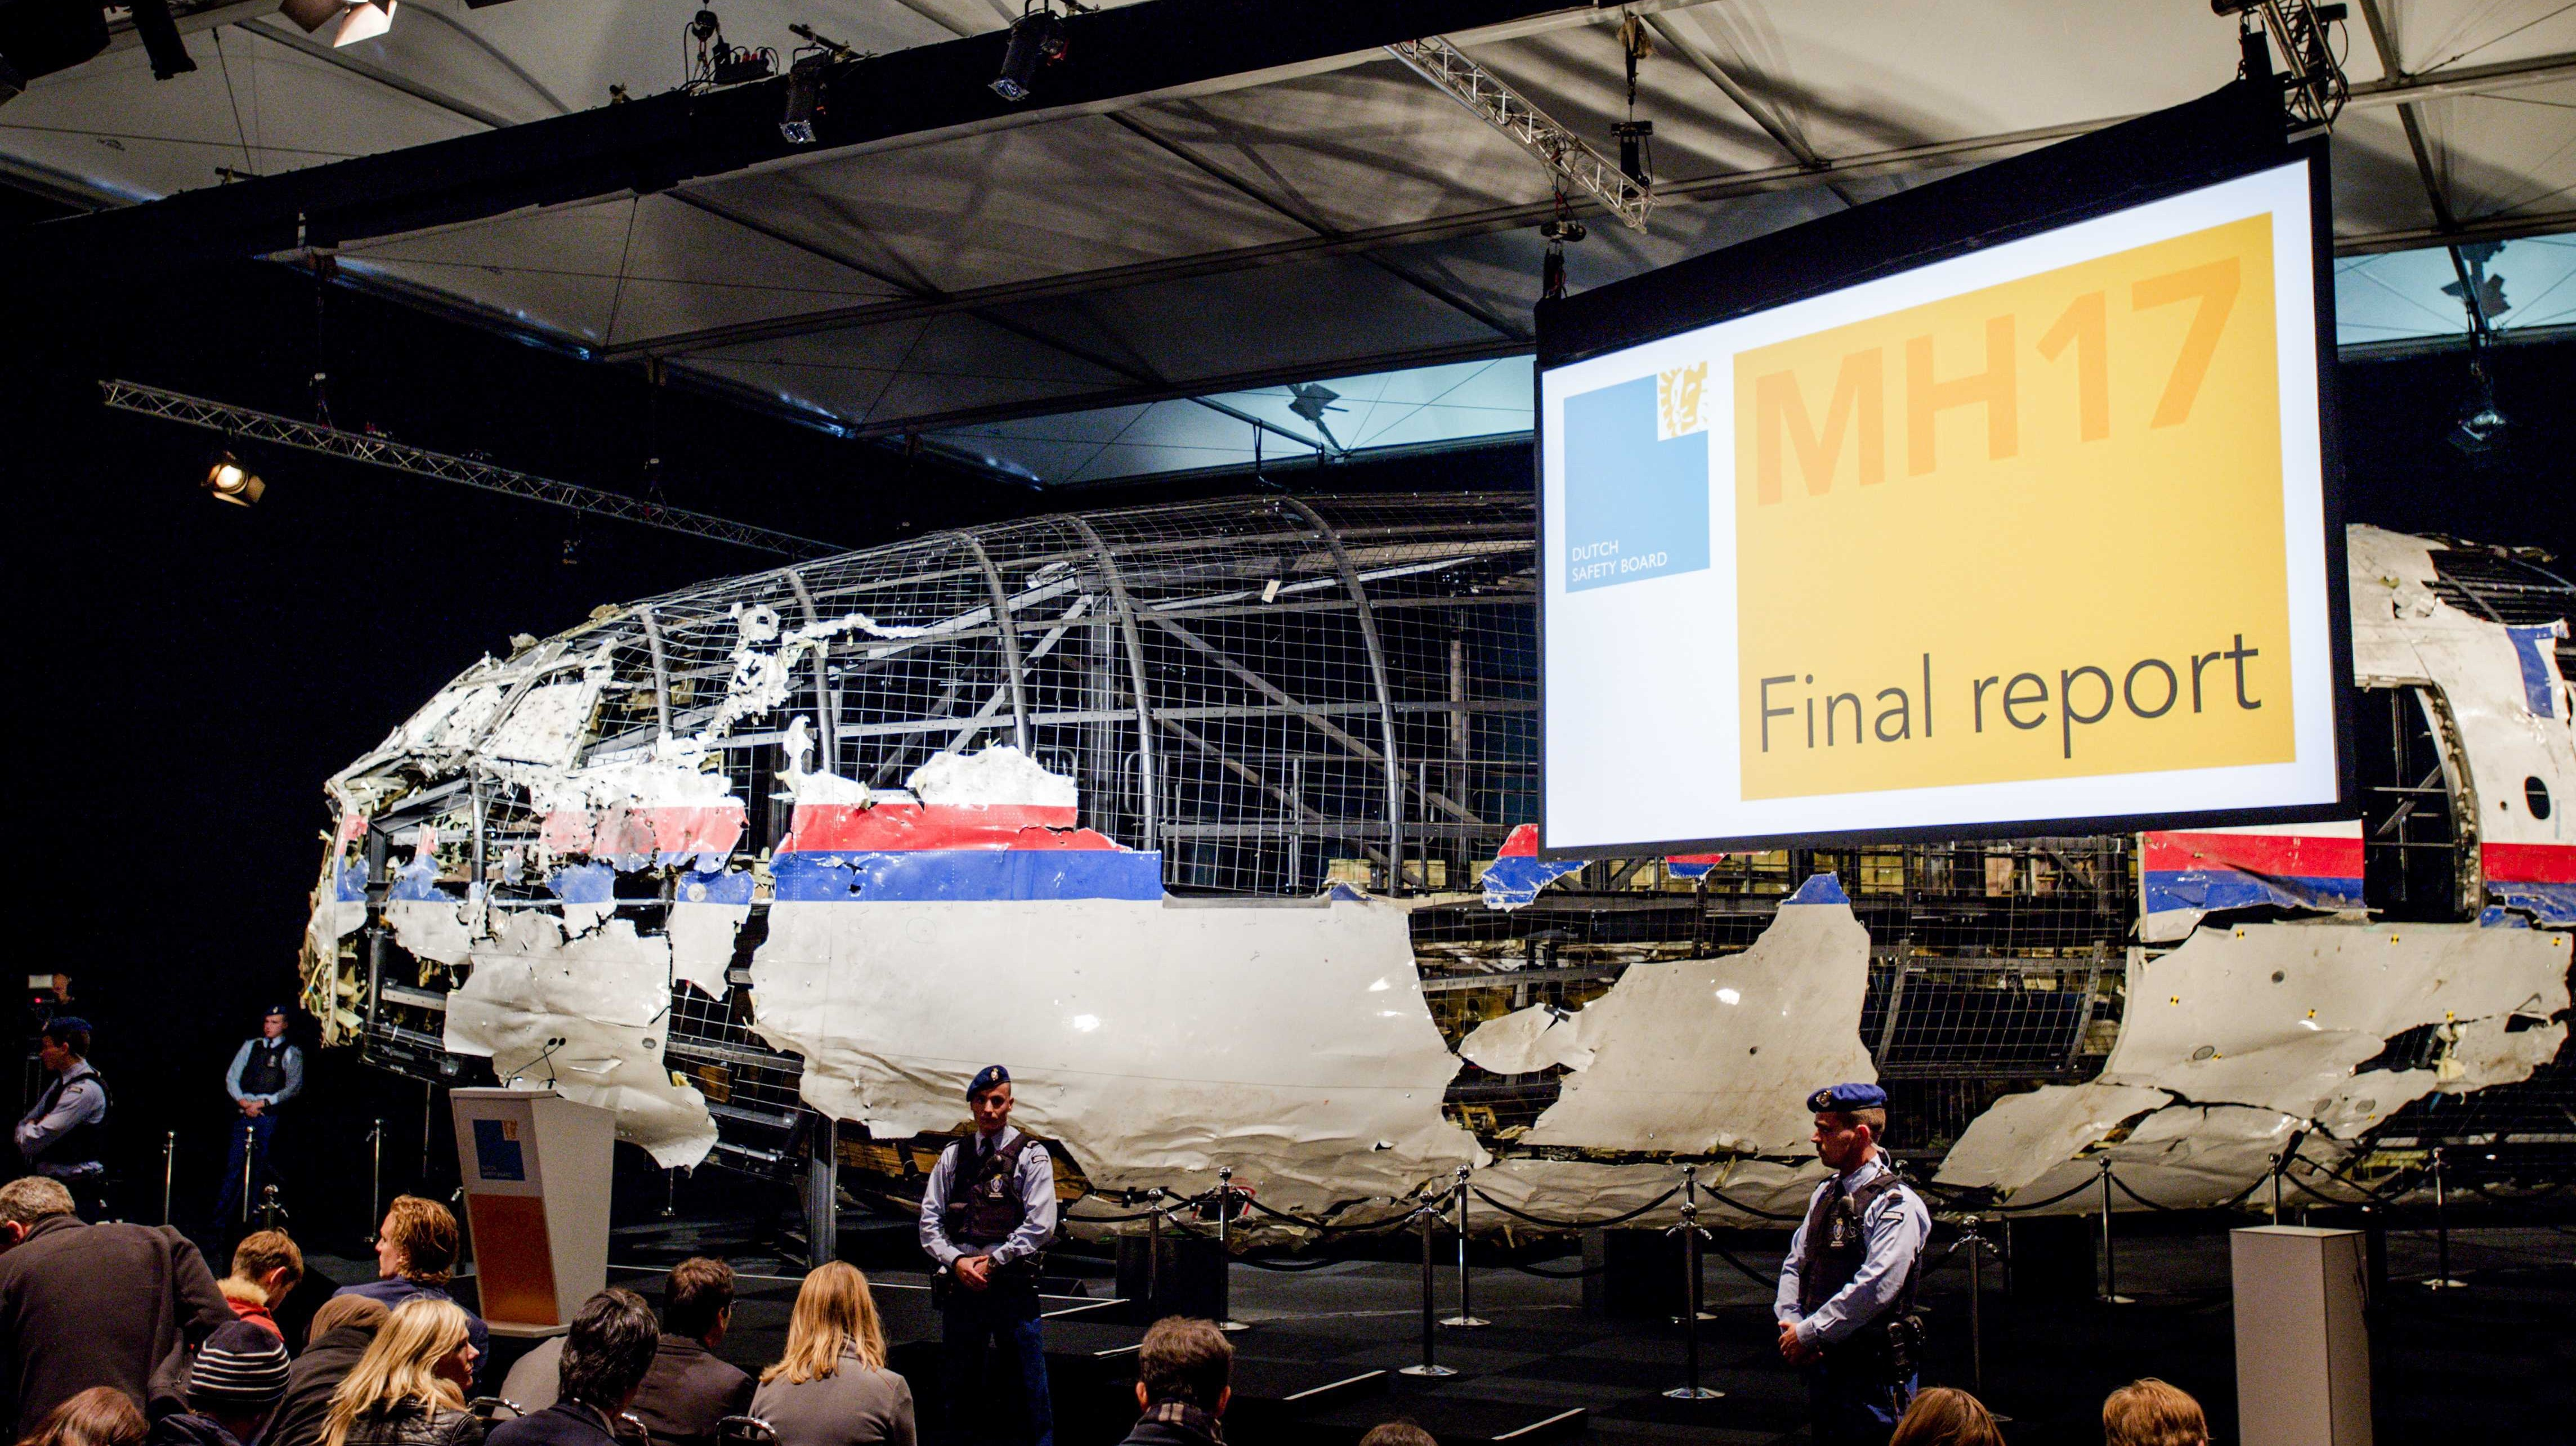 Russia Says That Conclusions on Malaysia Airlines Flight MH17 Crash Are 'Biased'